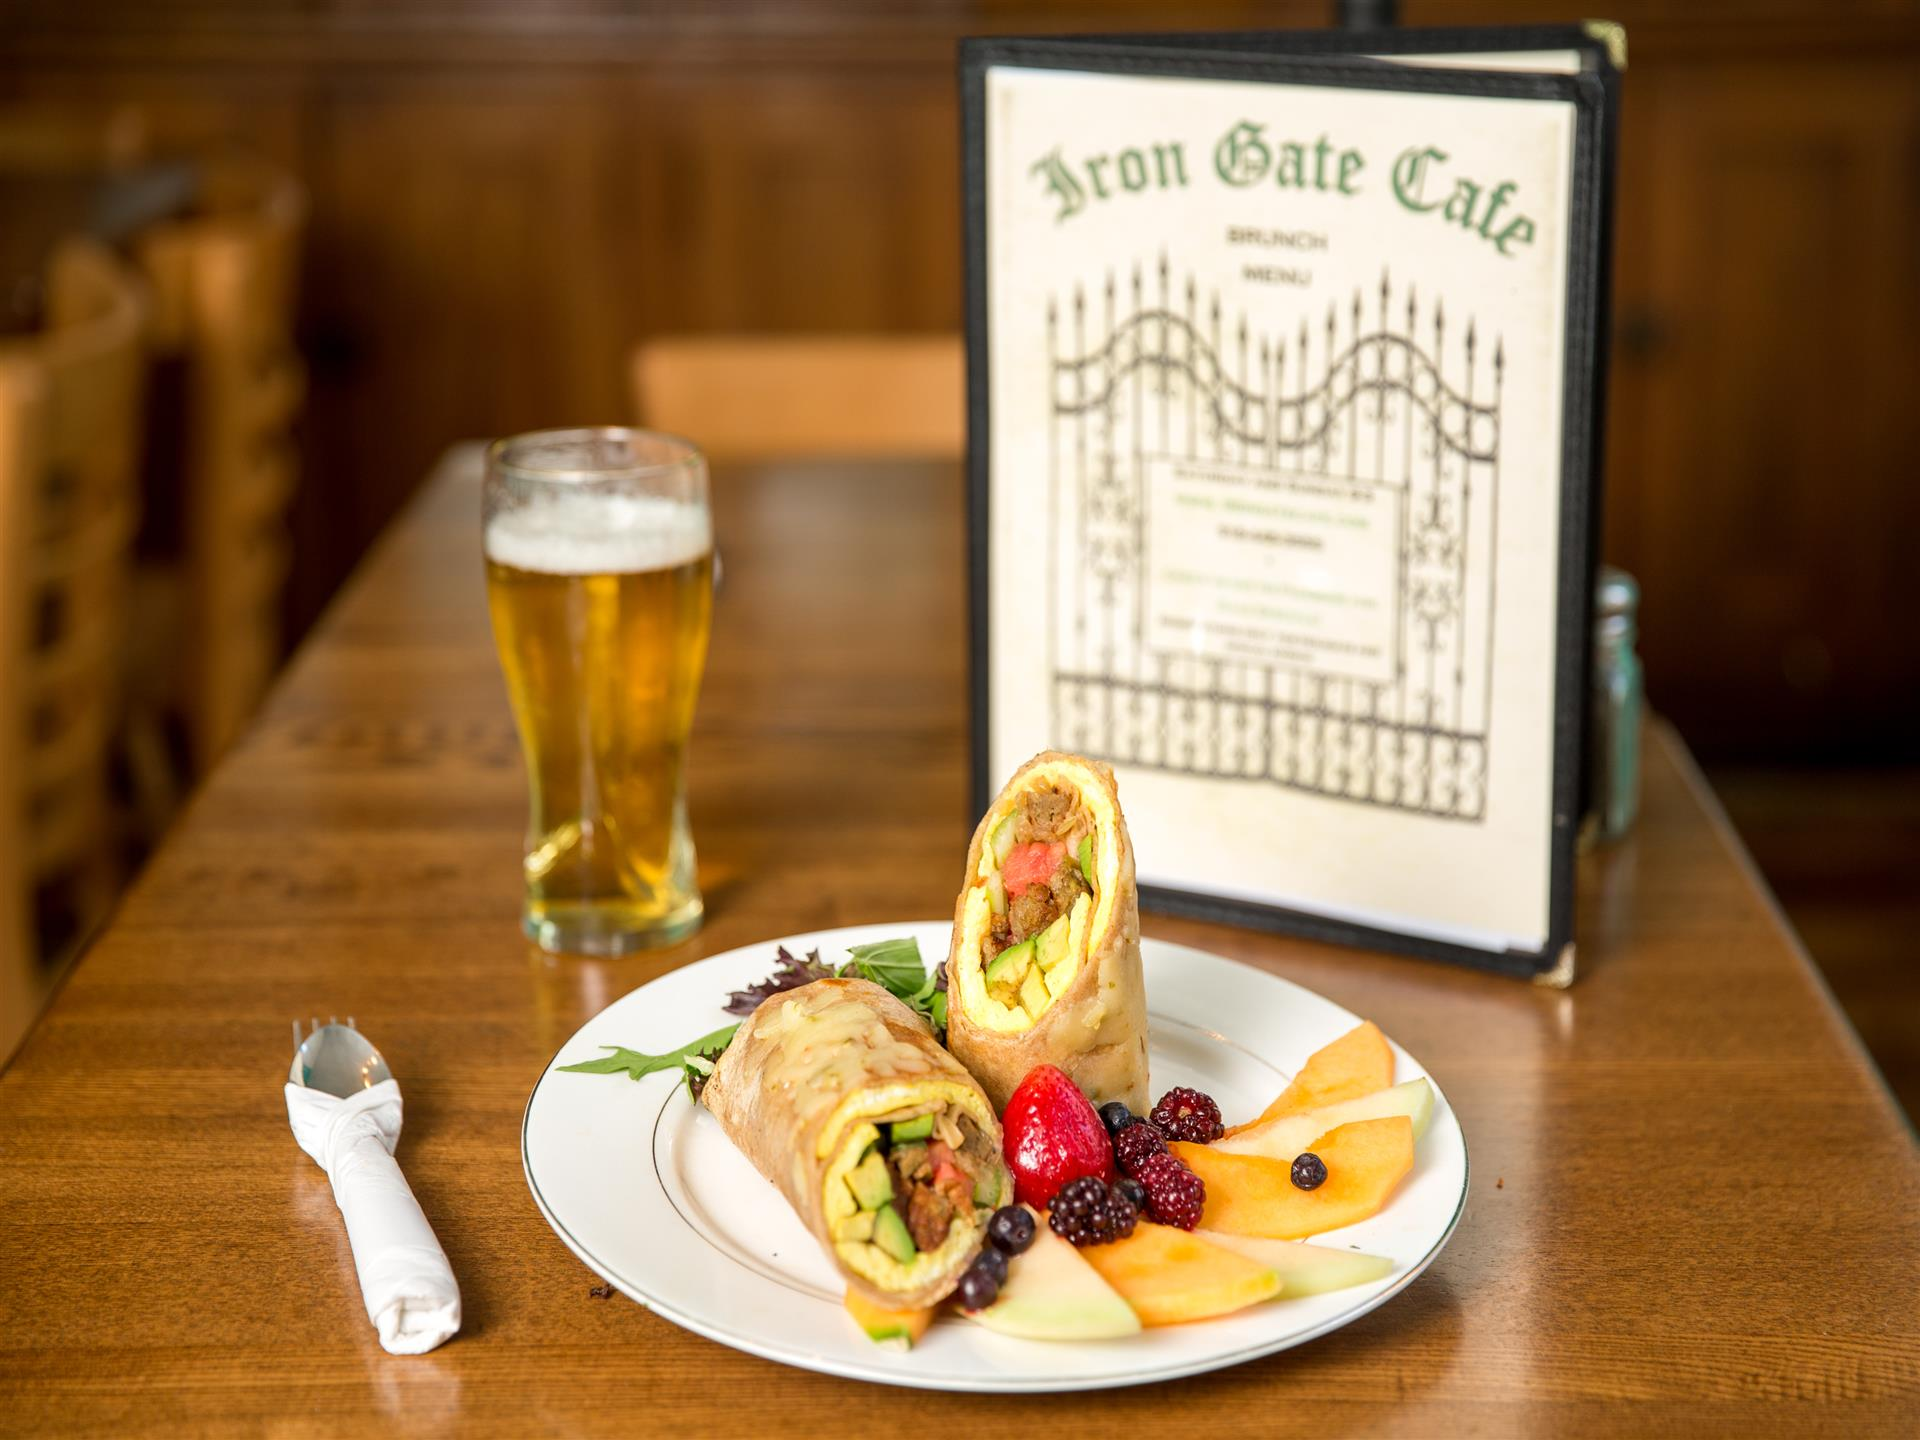 Stuffed wraps with sides of fruit on white plate with beer and menu on light brown table.